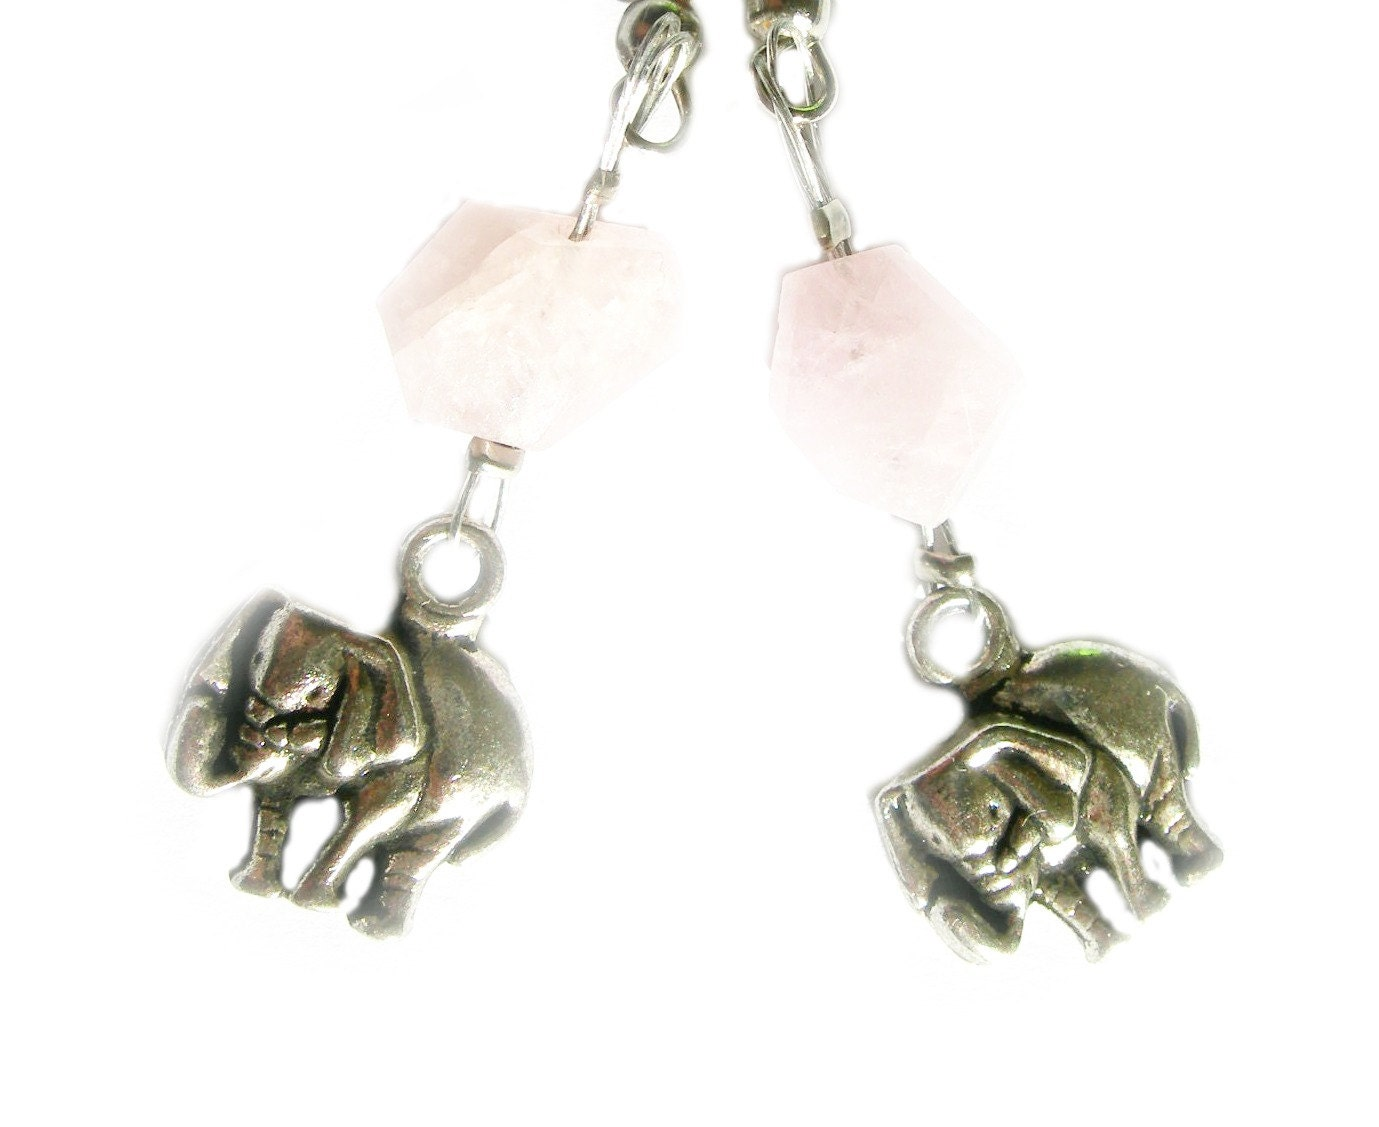 Elephant Earrings on Elephant Jewelry Pink Elephant Earrings Gift By Thewildroses